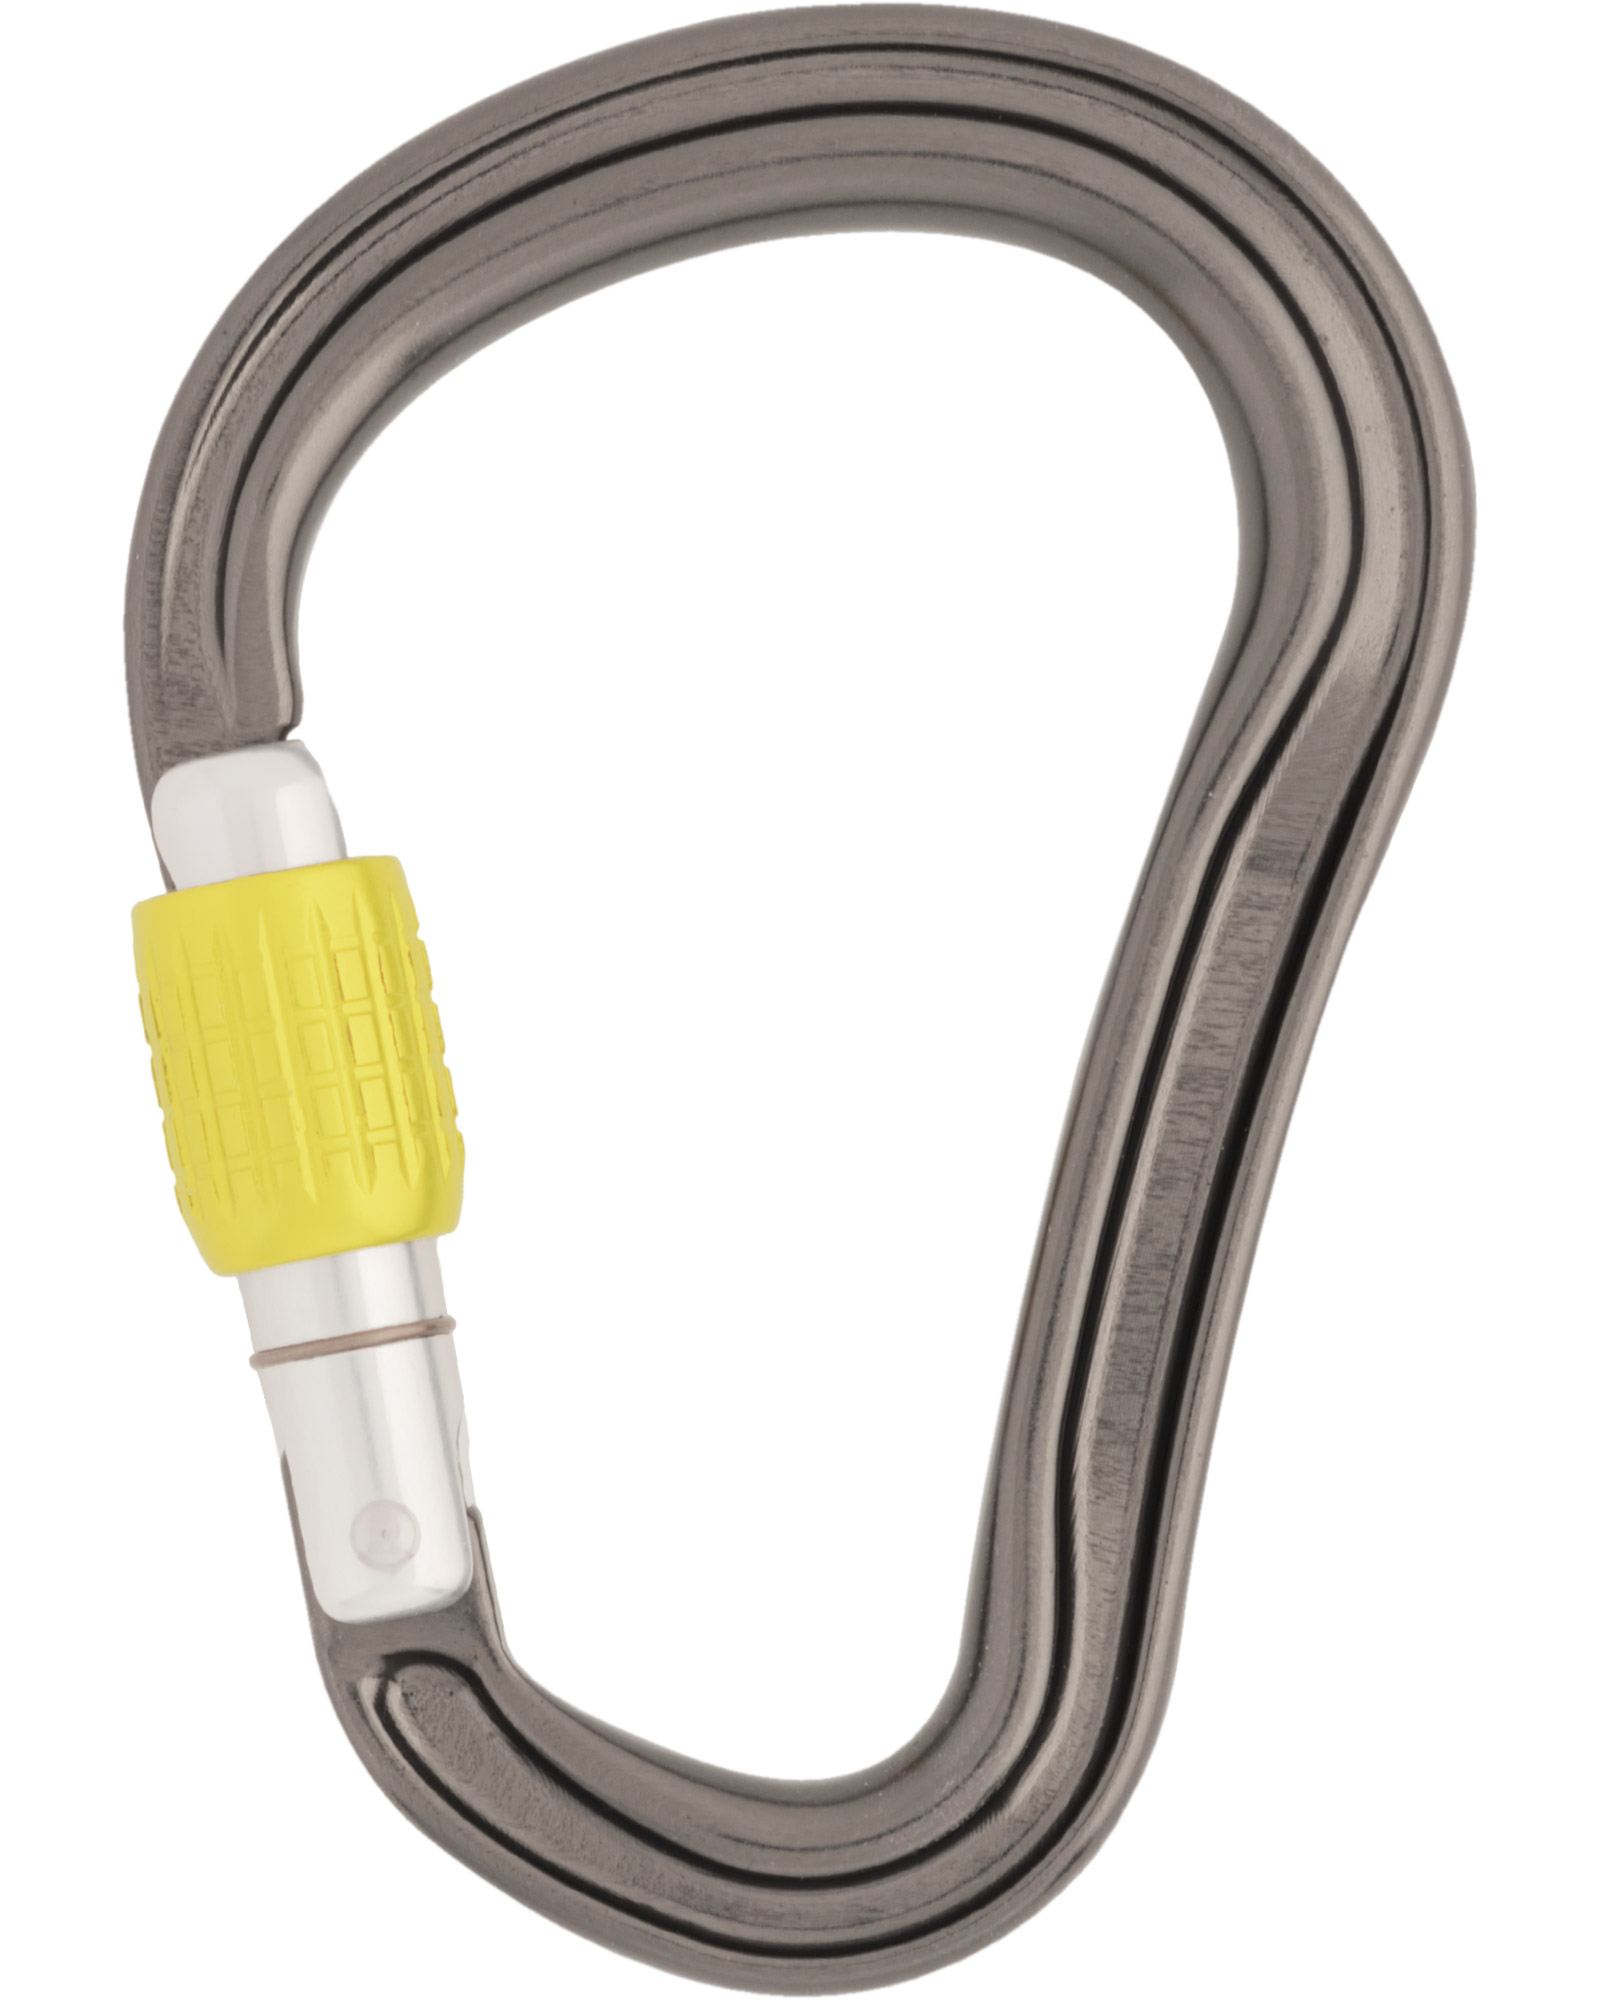 DMM Shadow HMS Screwgate Carabiner 0